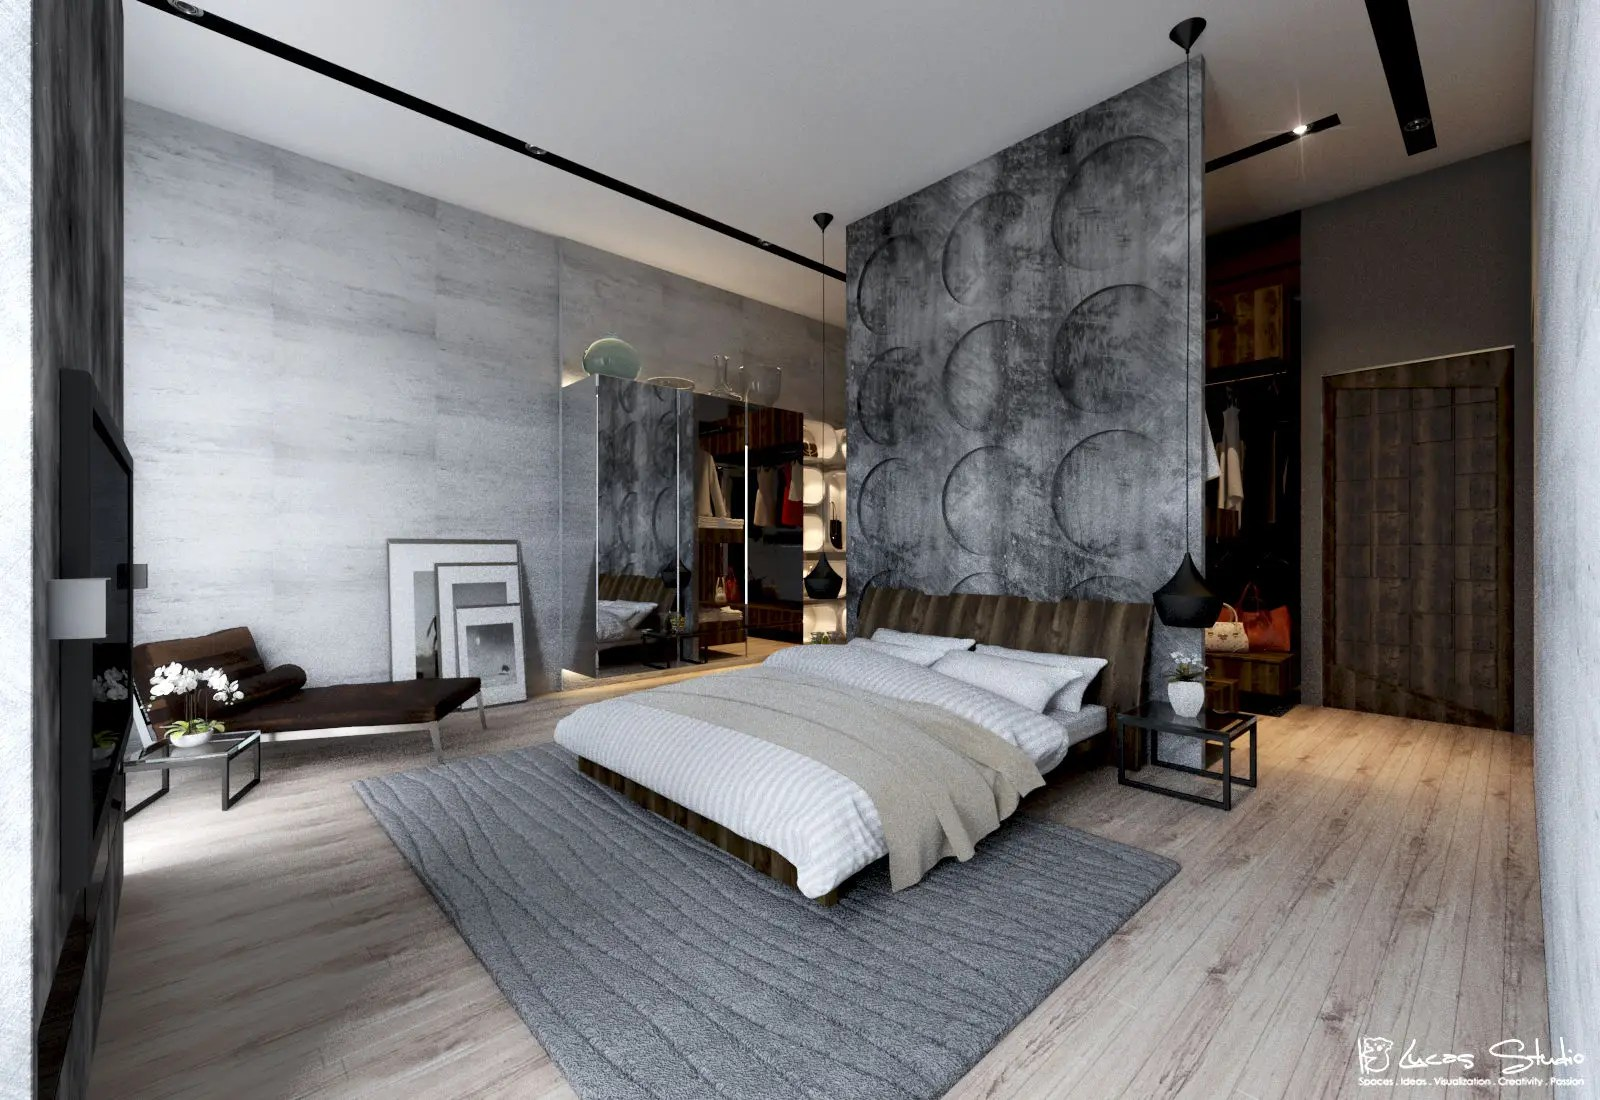 10 Beautiful Examples Of Bedroom Accent Walls - D.Signers on Teenage:rfnoincytf8= Room Designs  id=71453